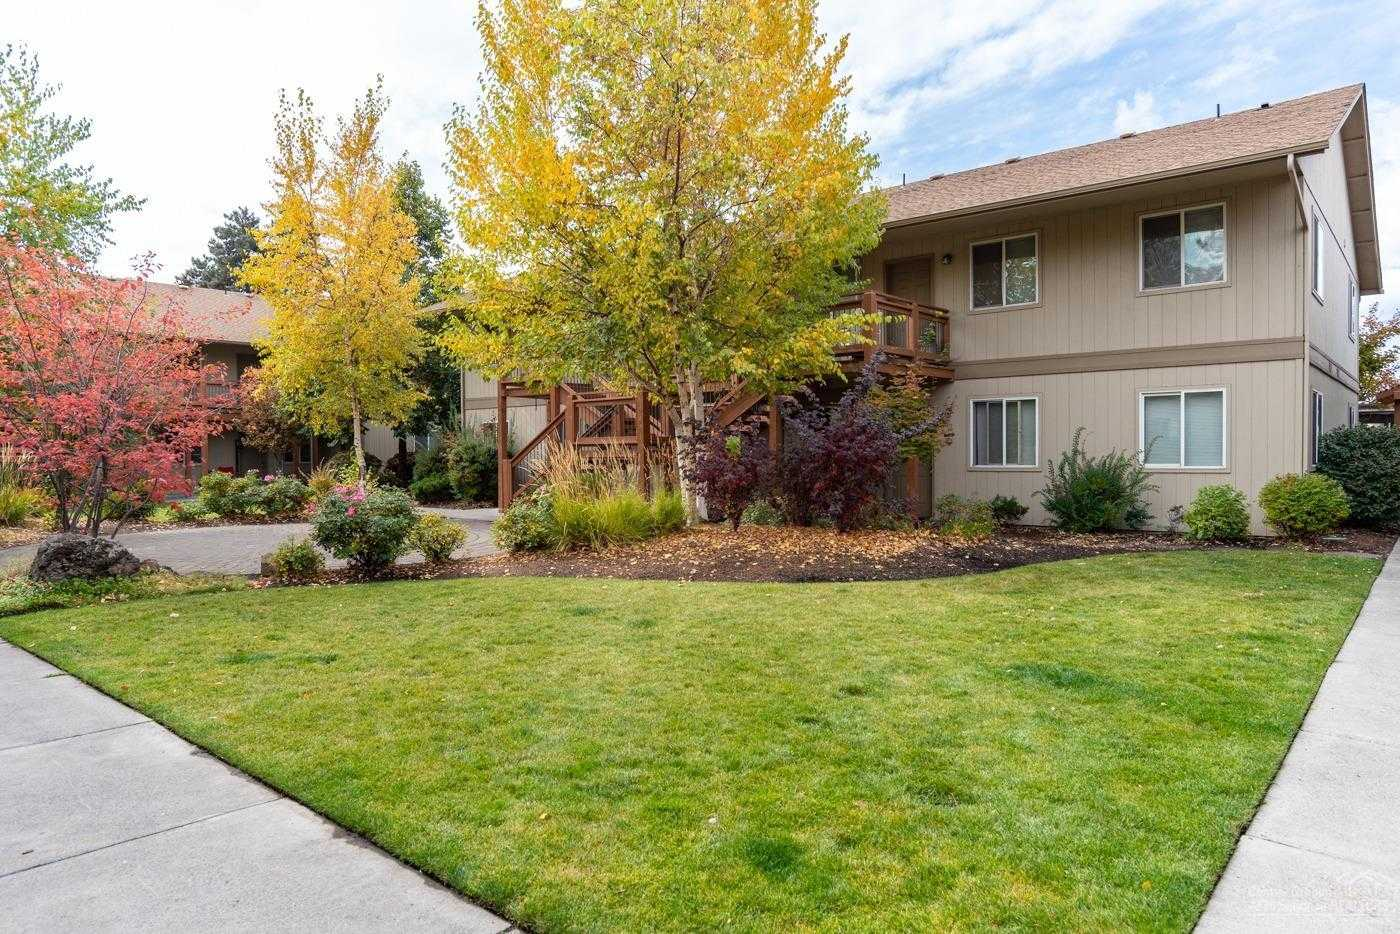 $139,900 - 2Br/1Ba -  for Sale in Bend